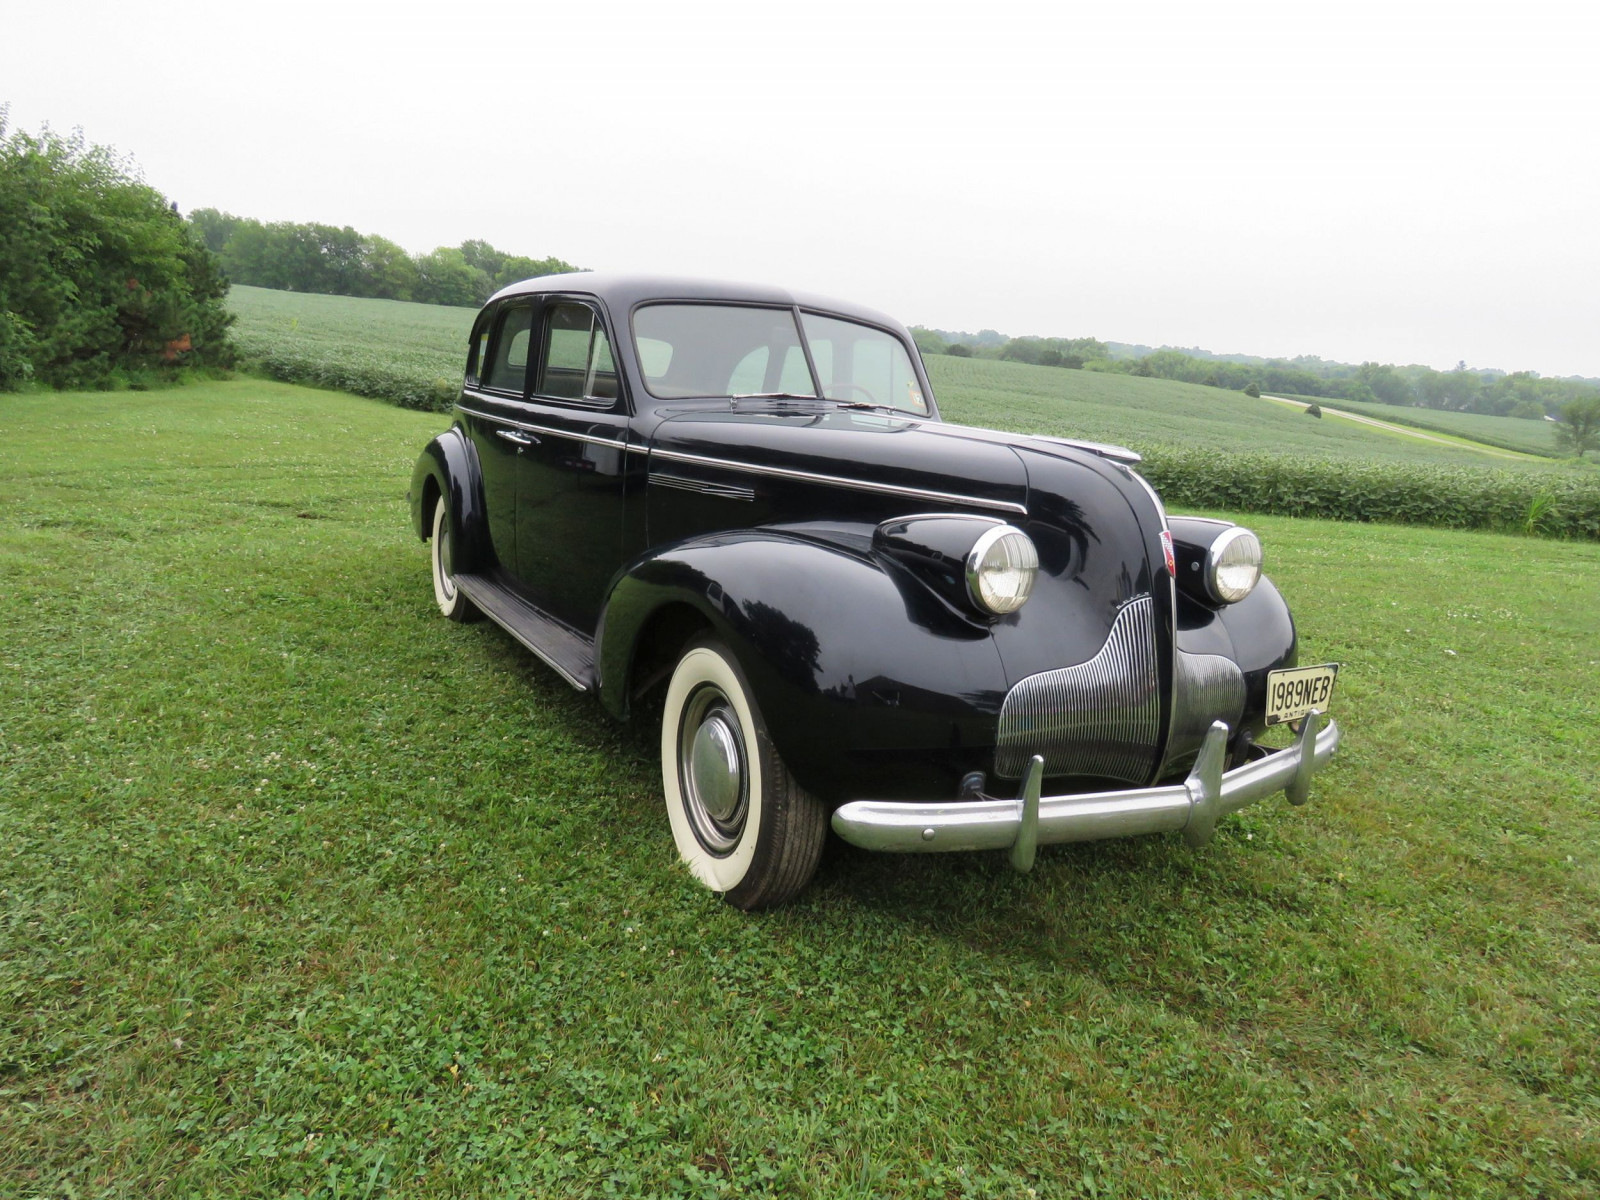 1939 Buick Special Series 40 4dr - Image 15